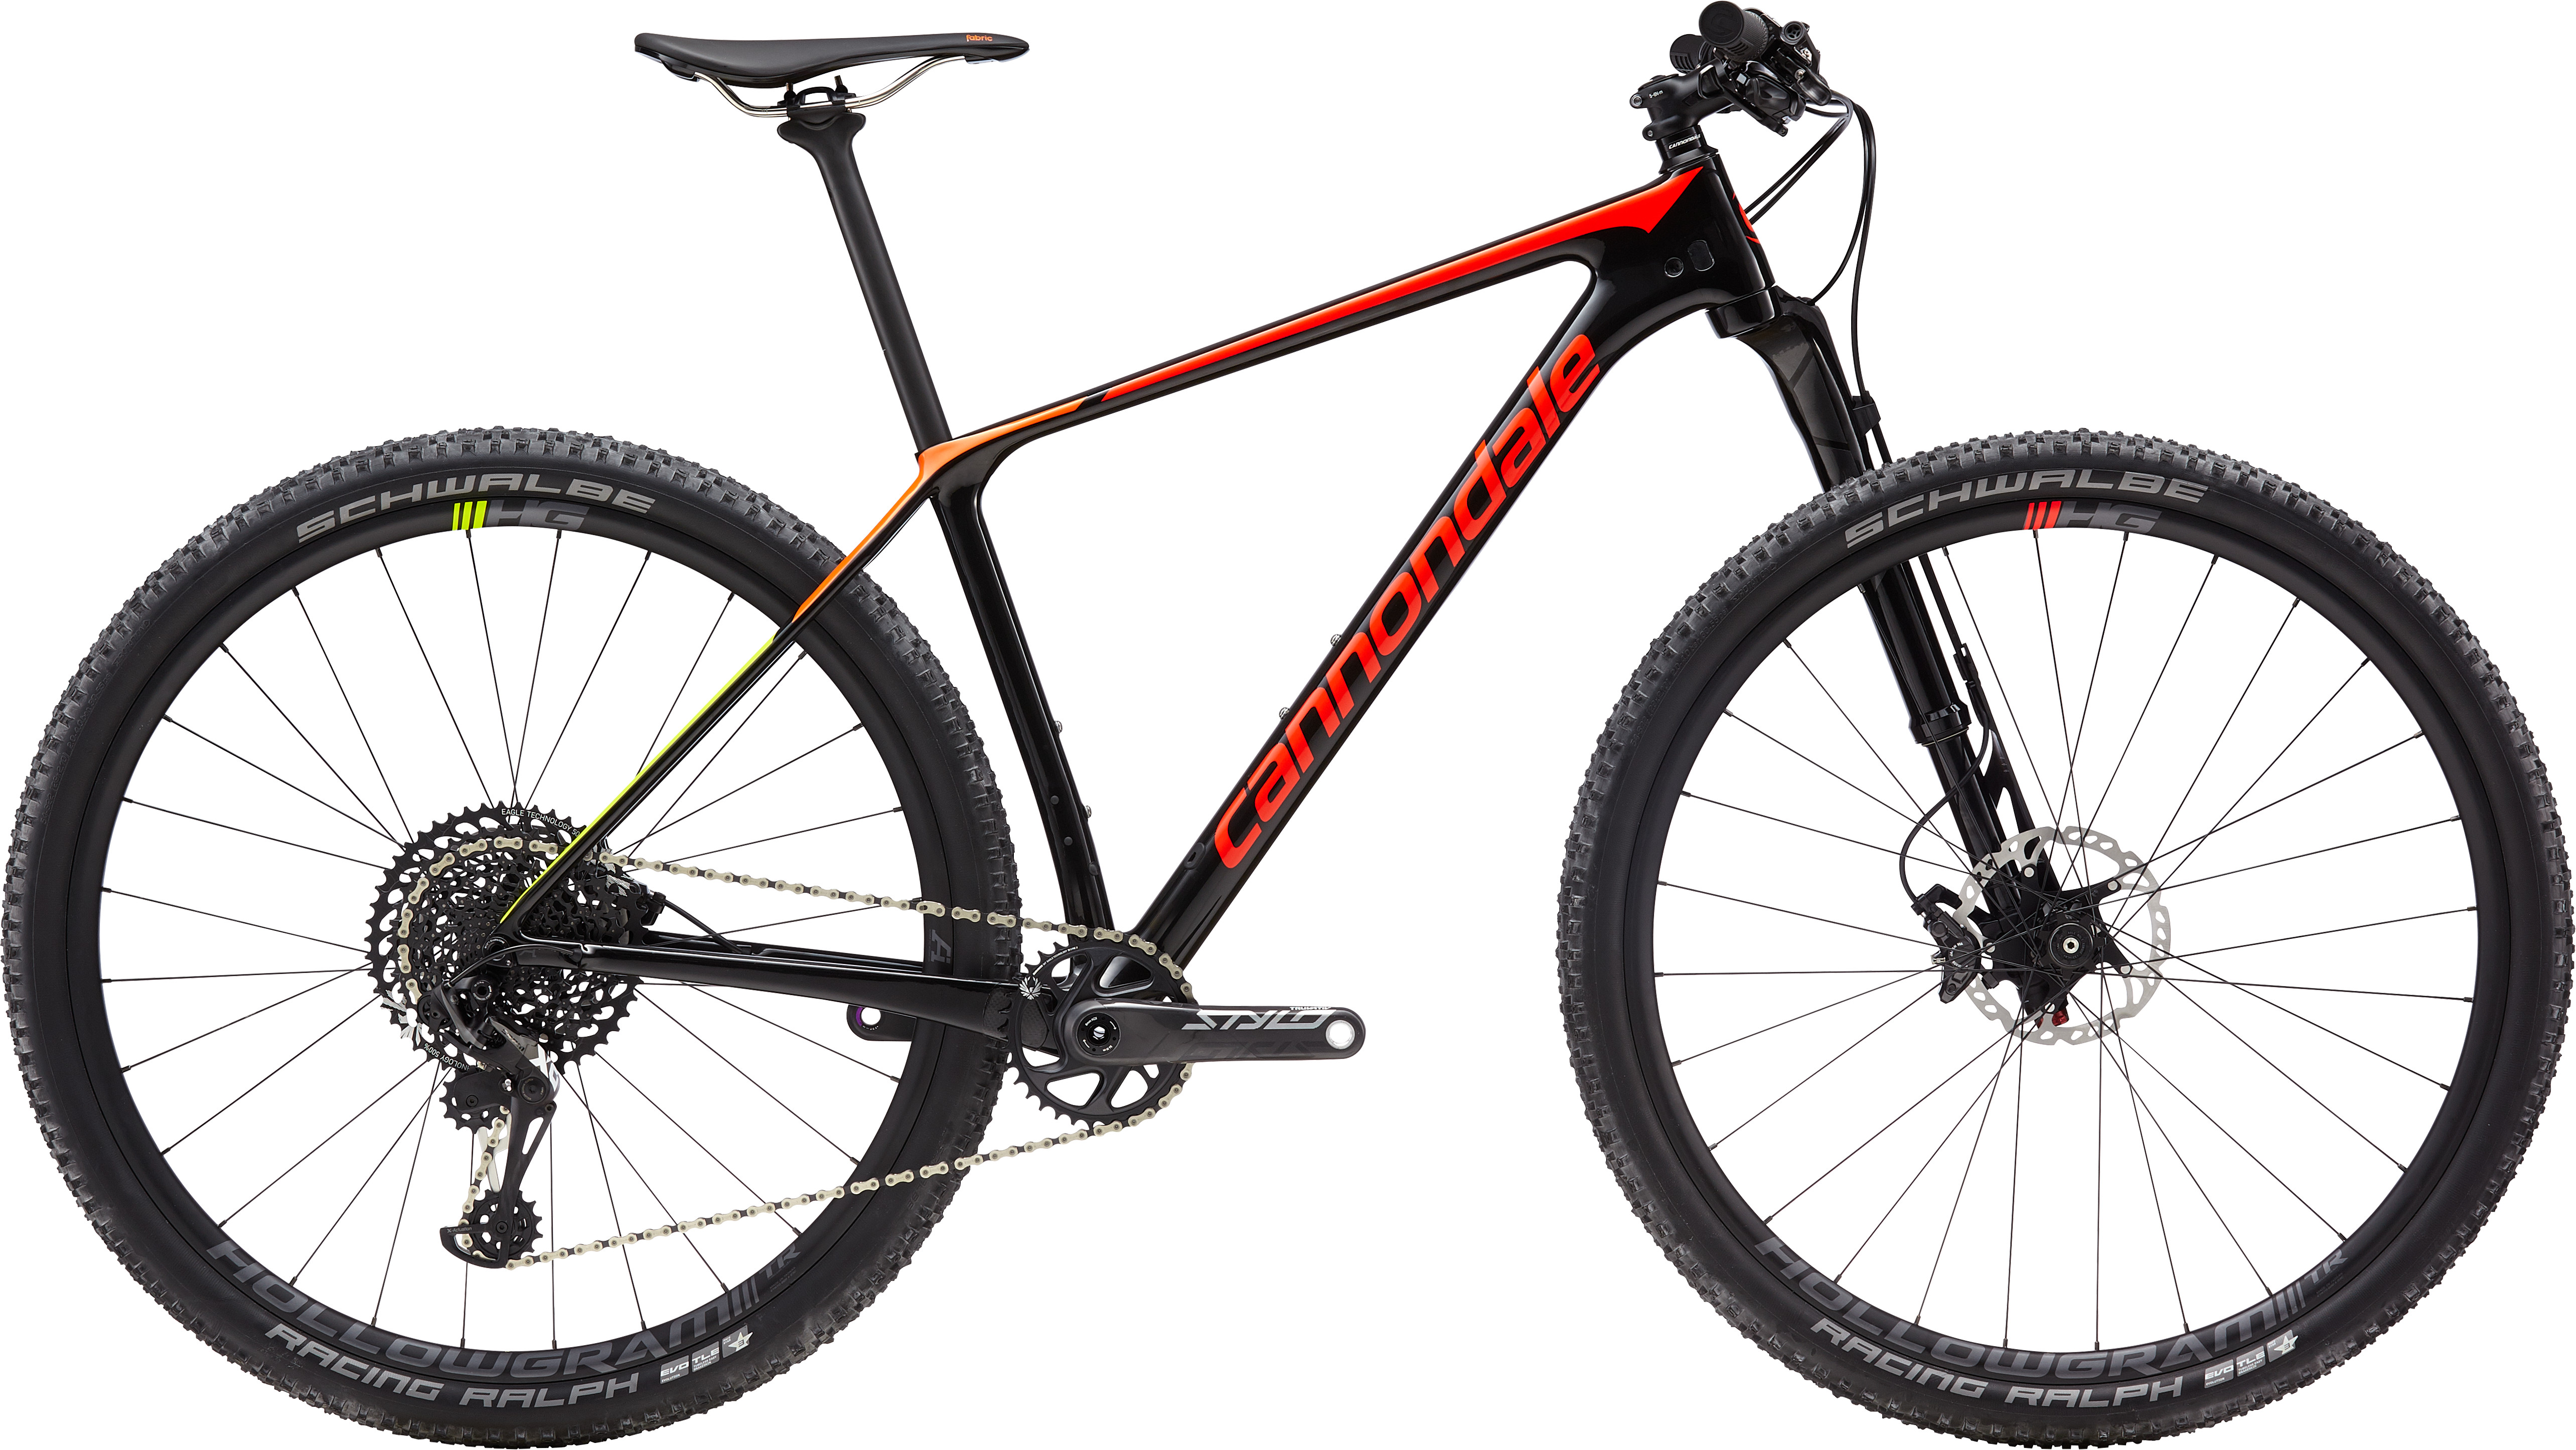 Cannondale F-Si Crb 2 BPL Black Pearl w/ Acid Red, Tangerine and Volt - Glos 2019 - HE 29 -  M